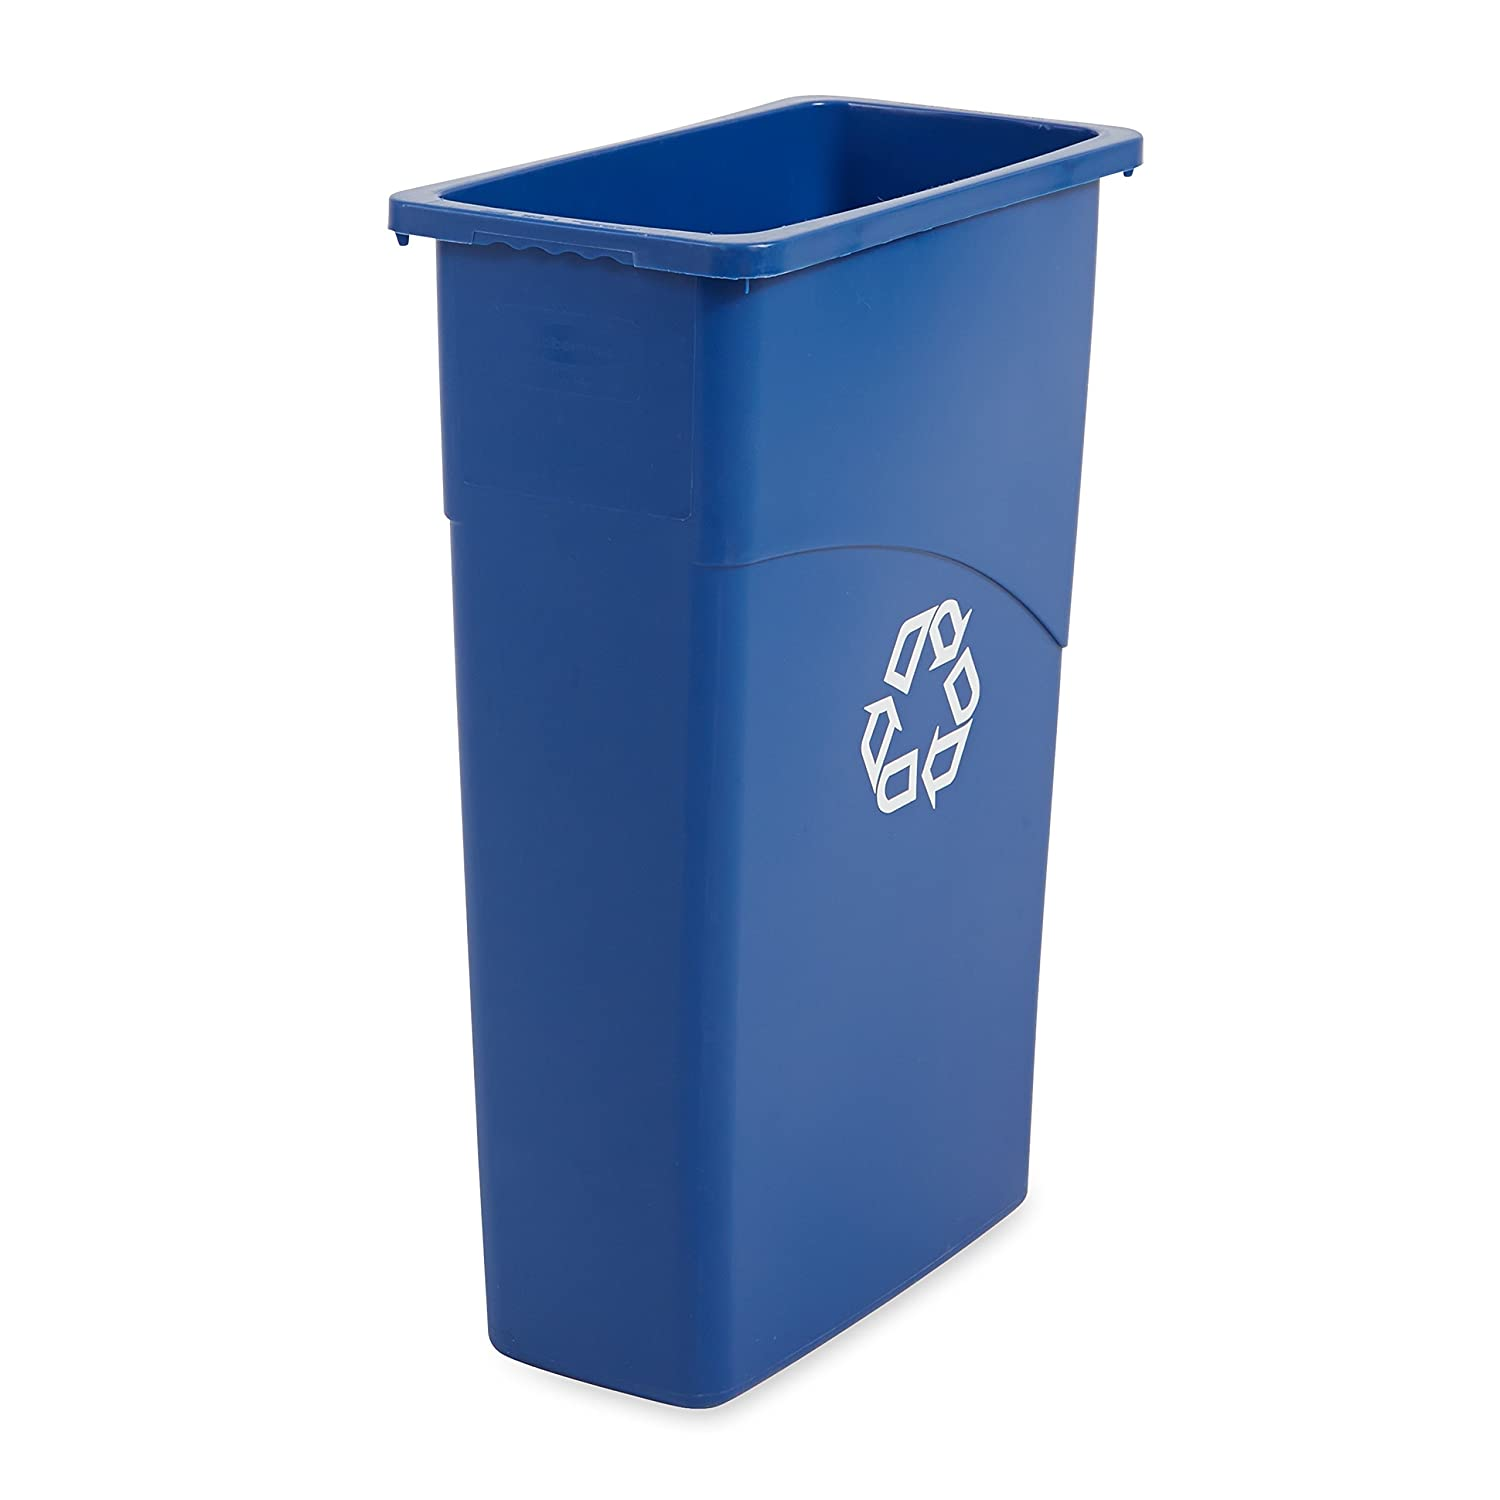 Amazon.com: Rubbermaid Slim Jim Waste Container, 87 L - Blue ...